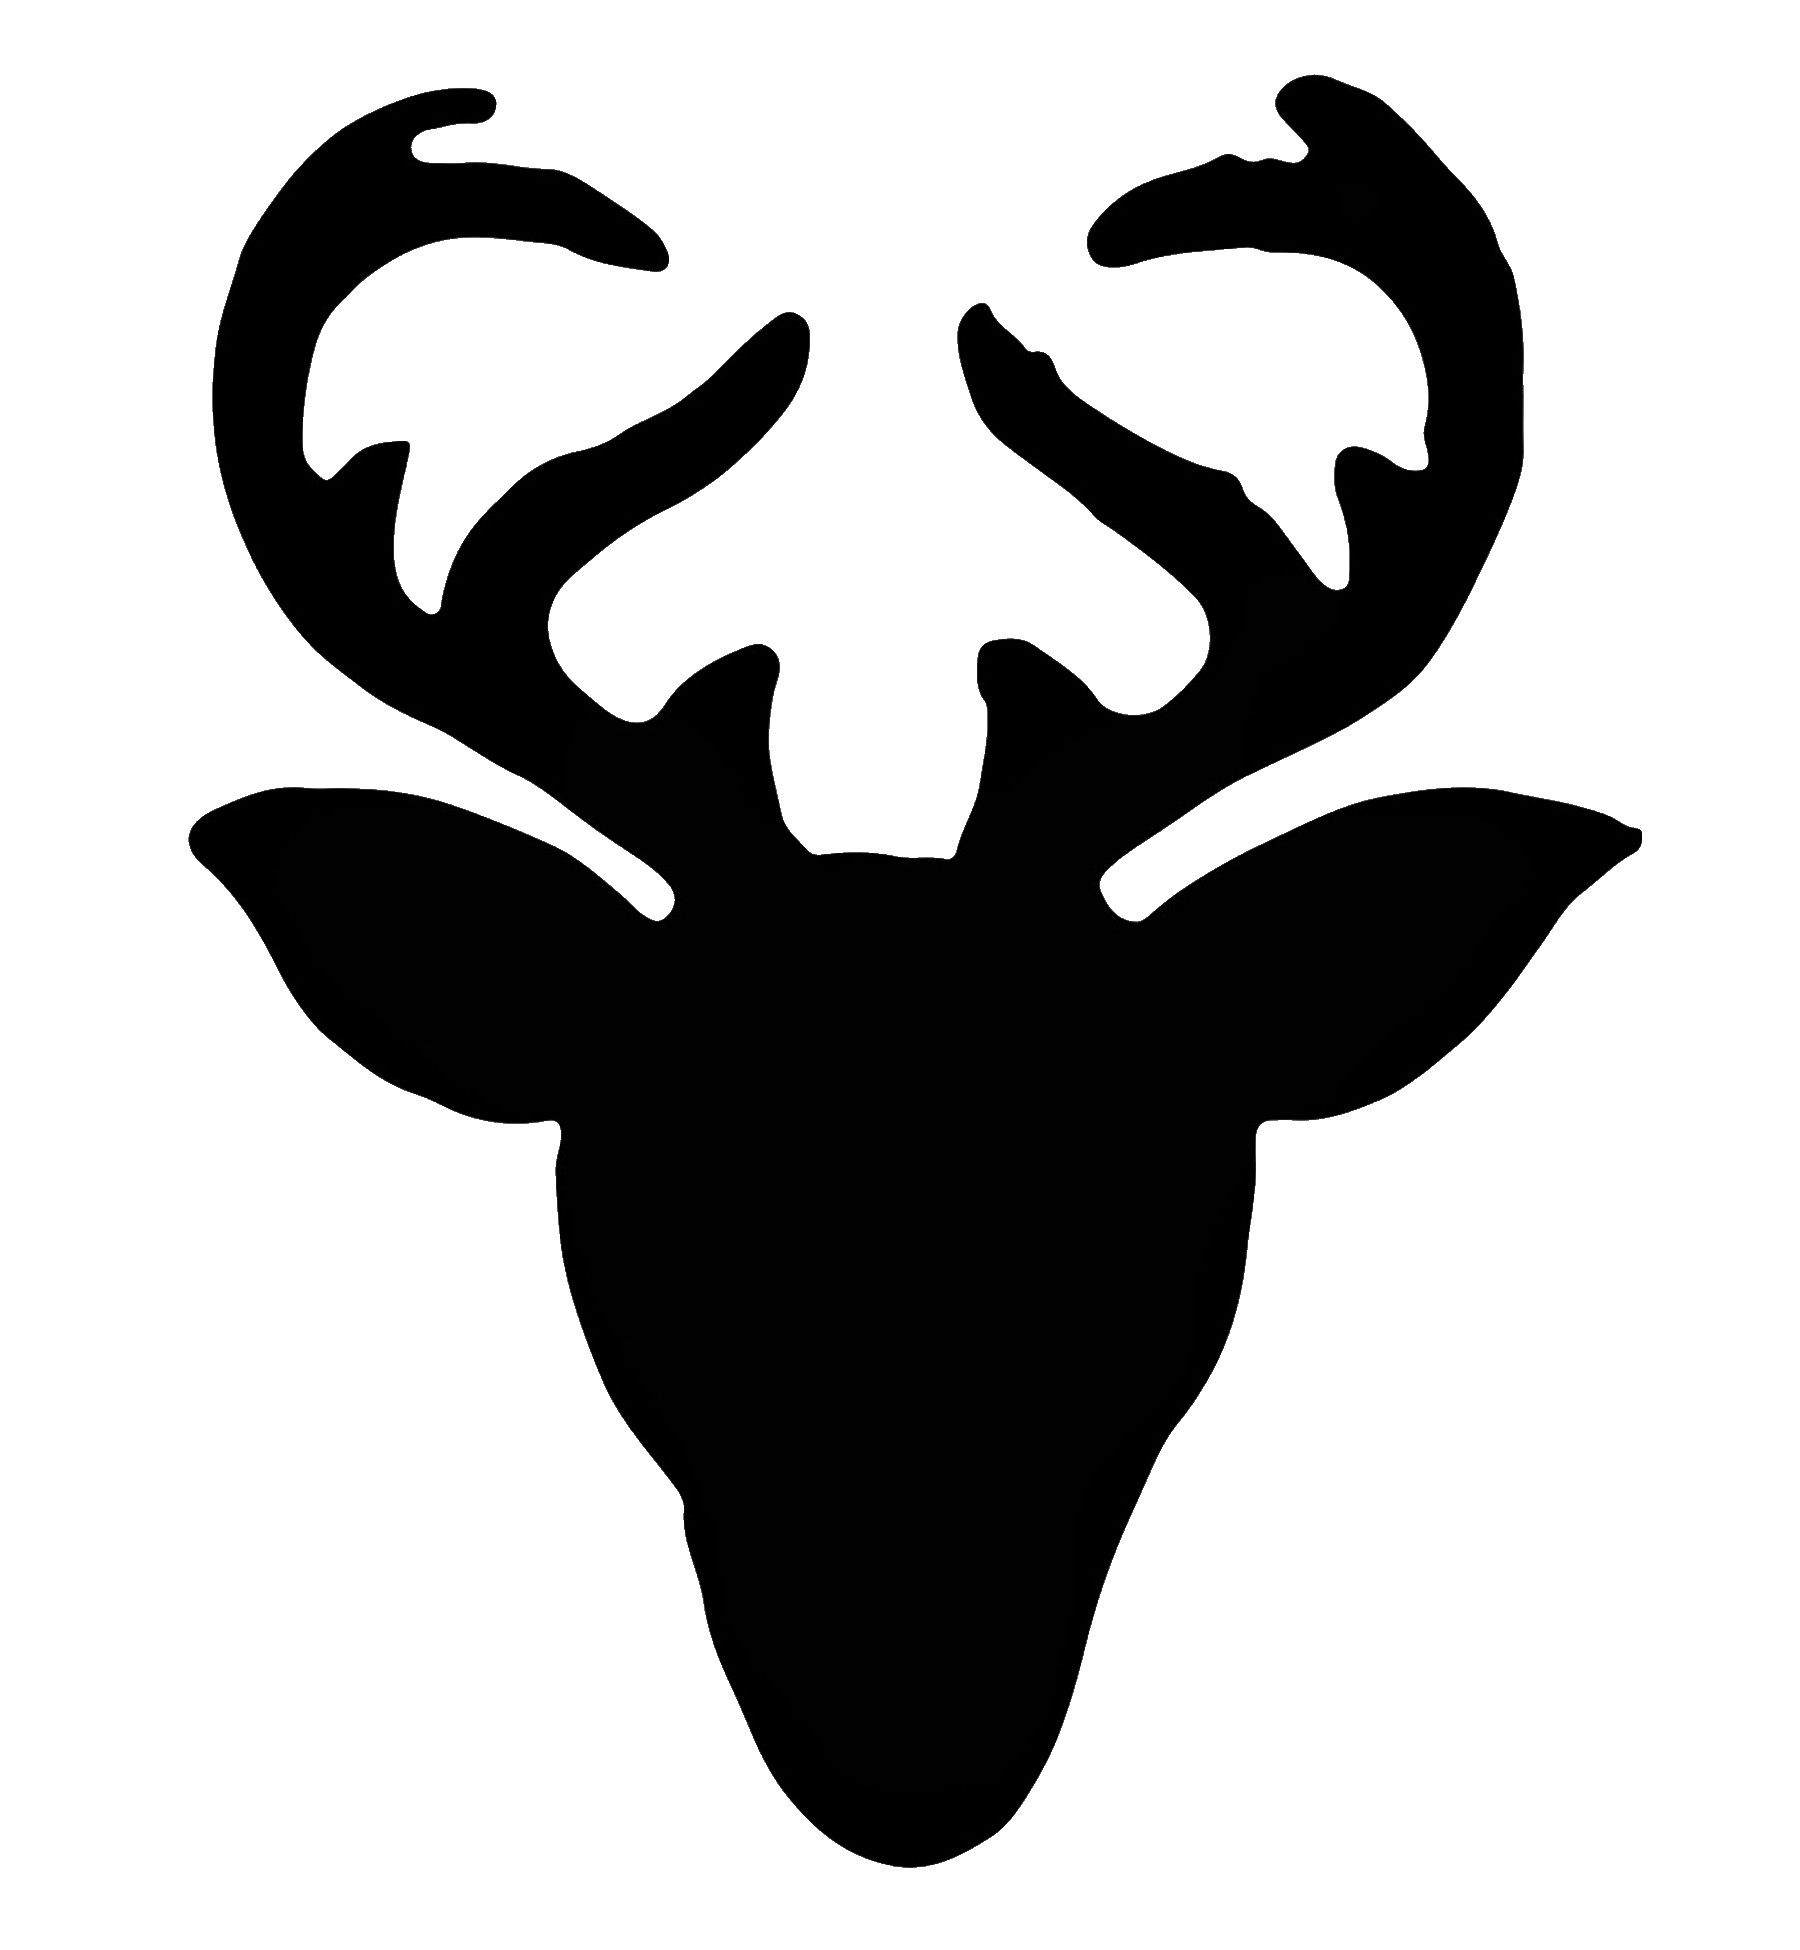 1800x1950 Deer Silhouette Stencil Thatswhatsup